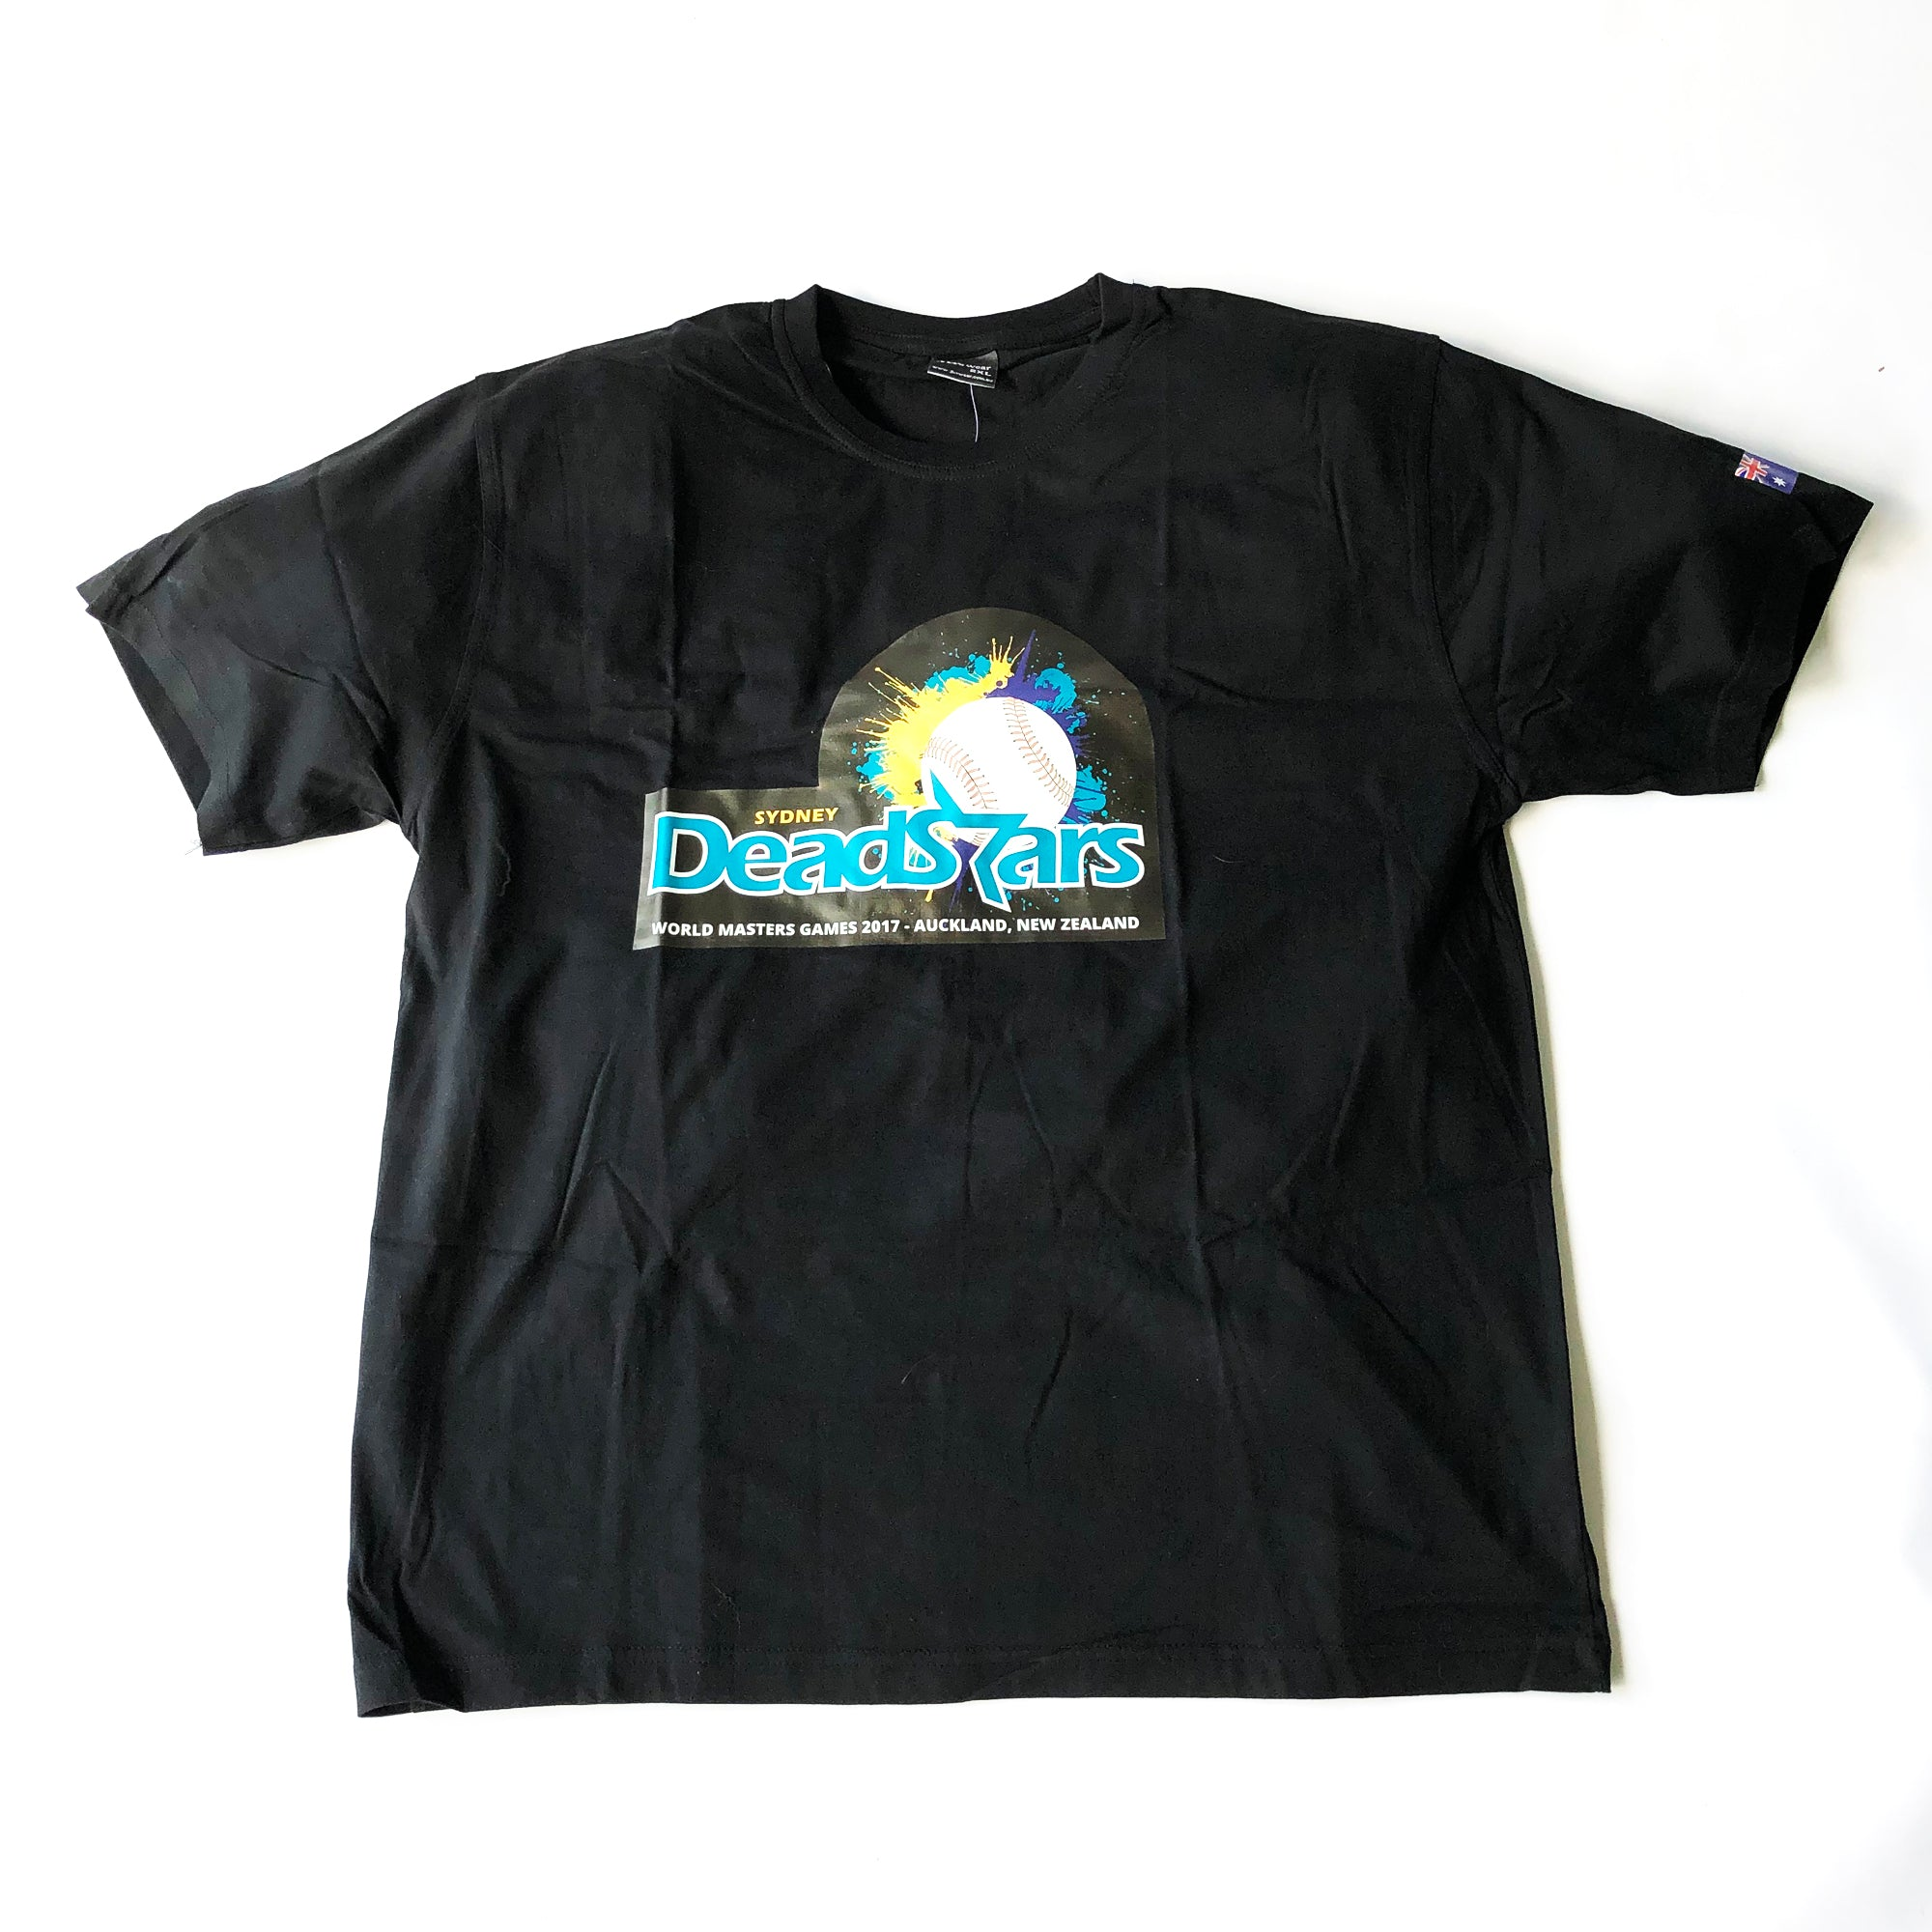 2017 World Masters Games T Shirt